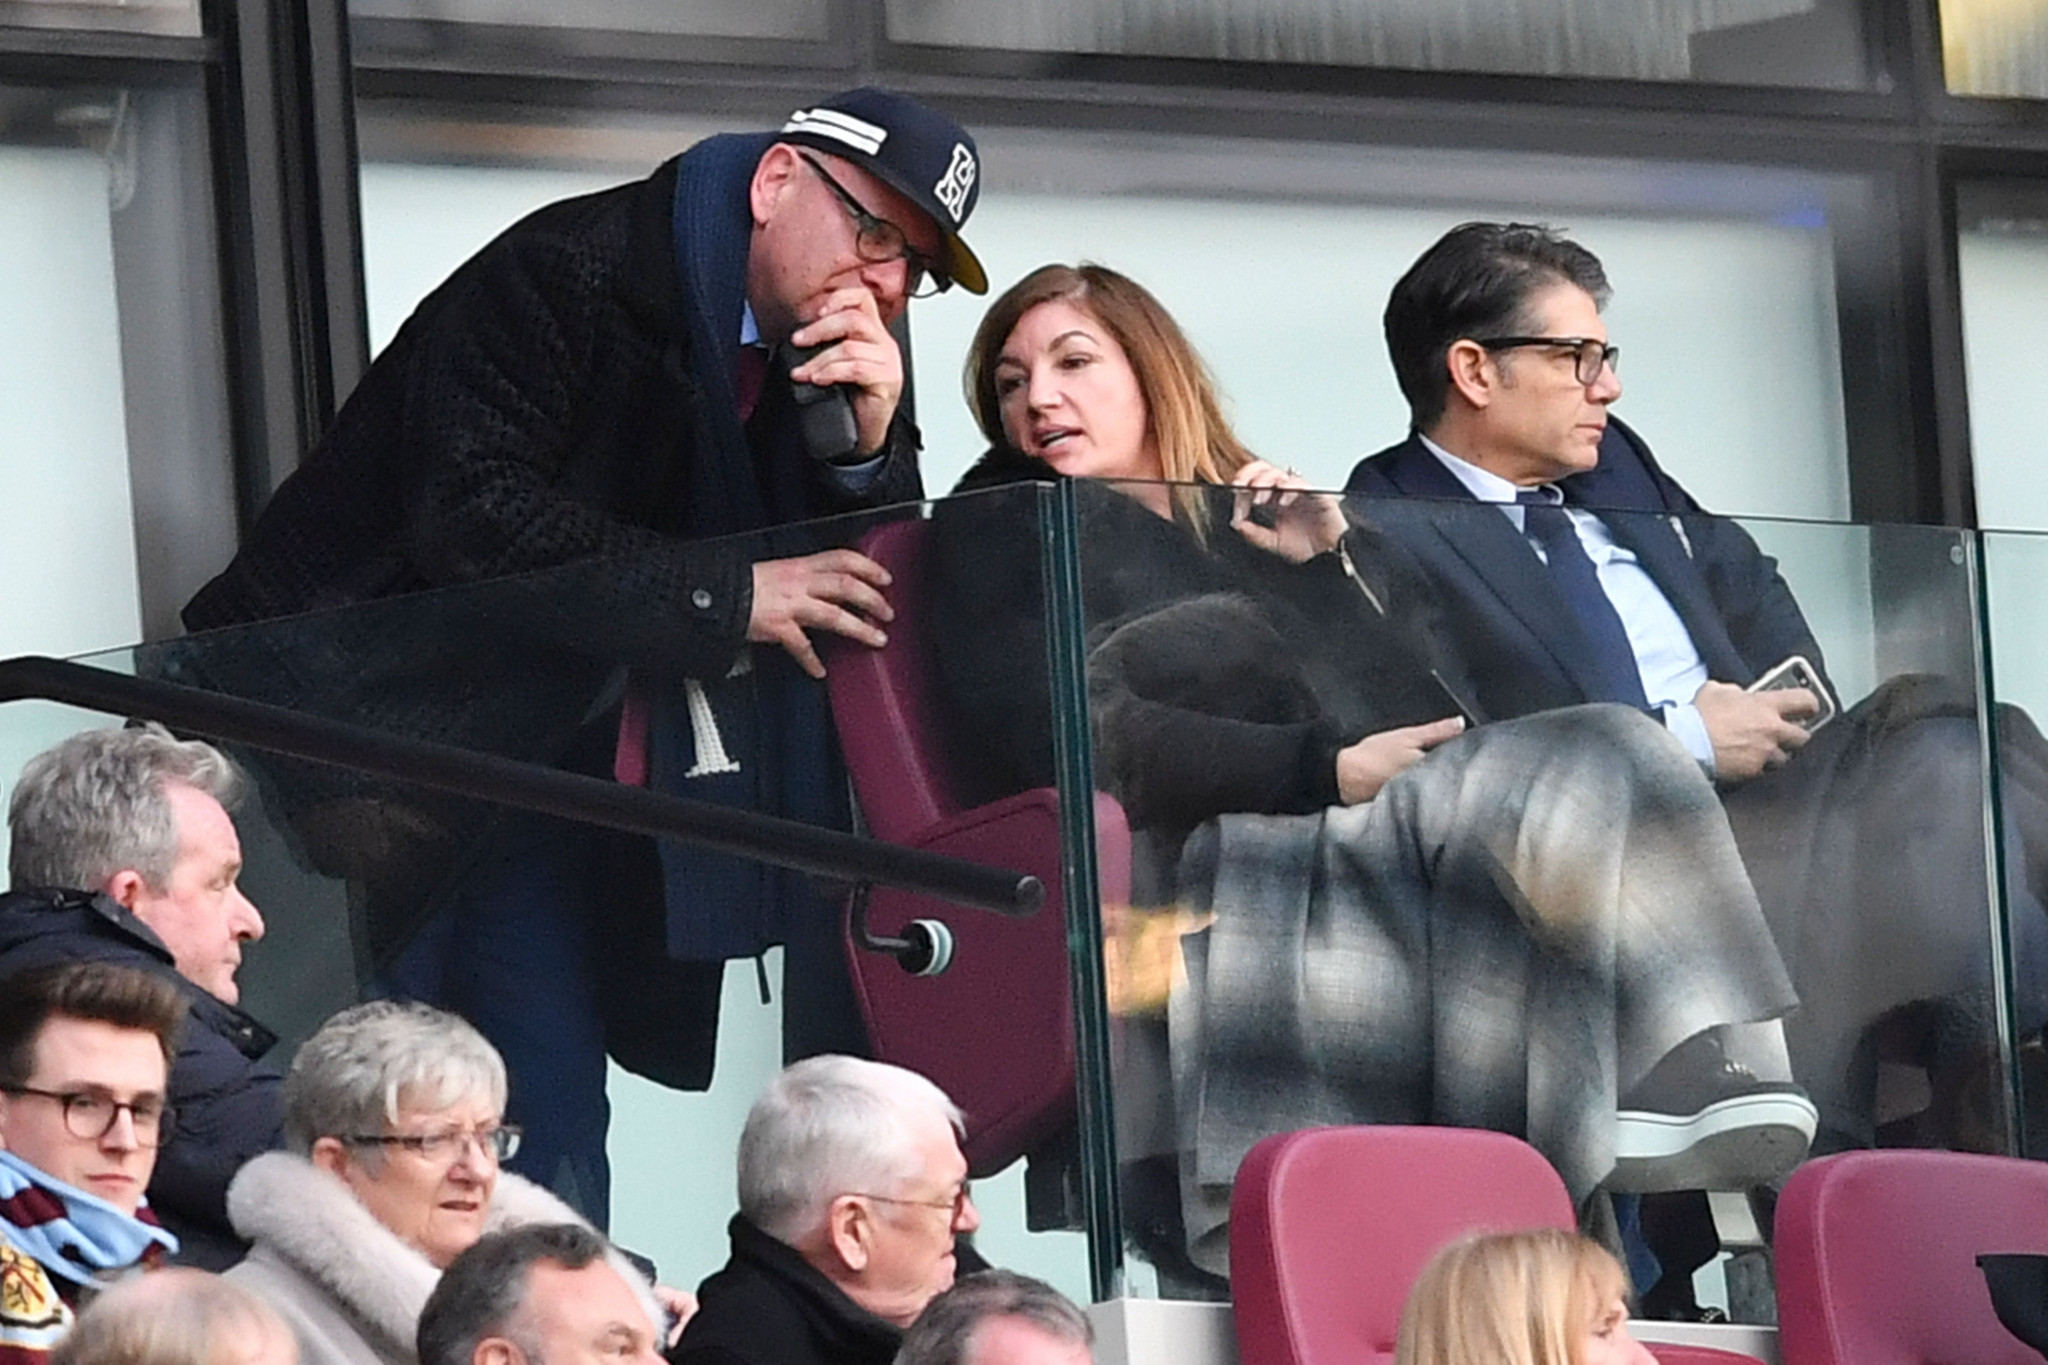 West Ham United vice-chairman Karren Brady claims she is optimistic the Premier League club will have a better relationship with London Mayor Sadiq Khan after the two held talks ©Getty Images